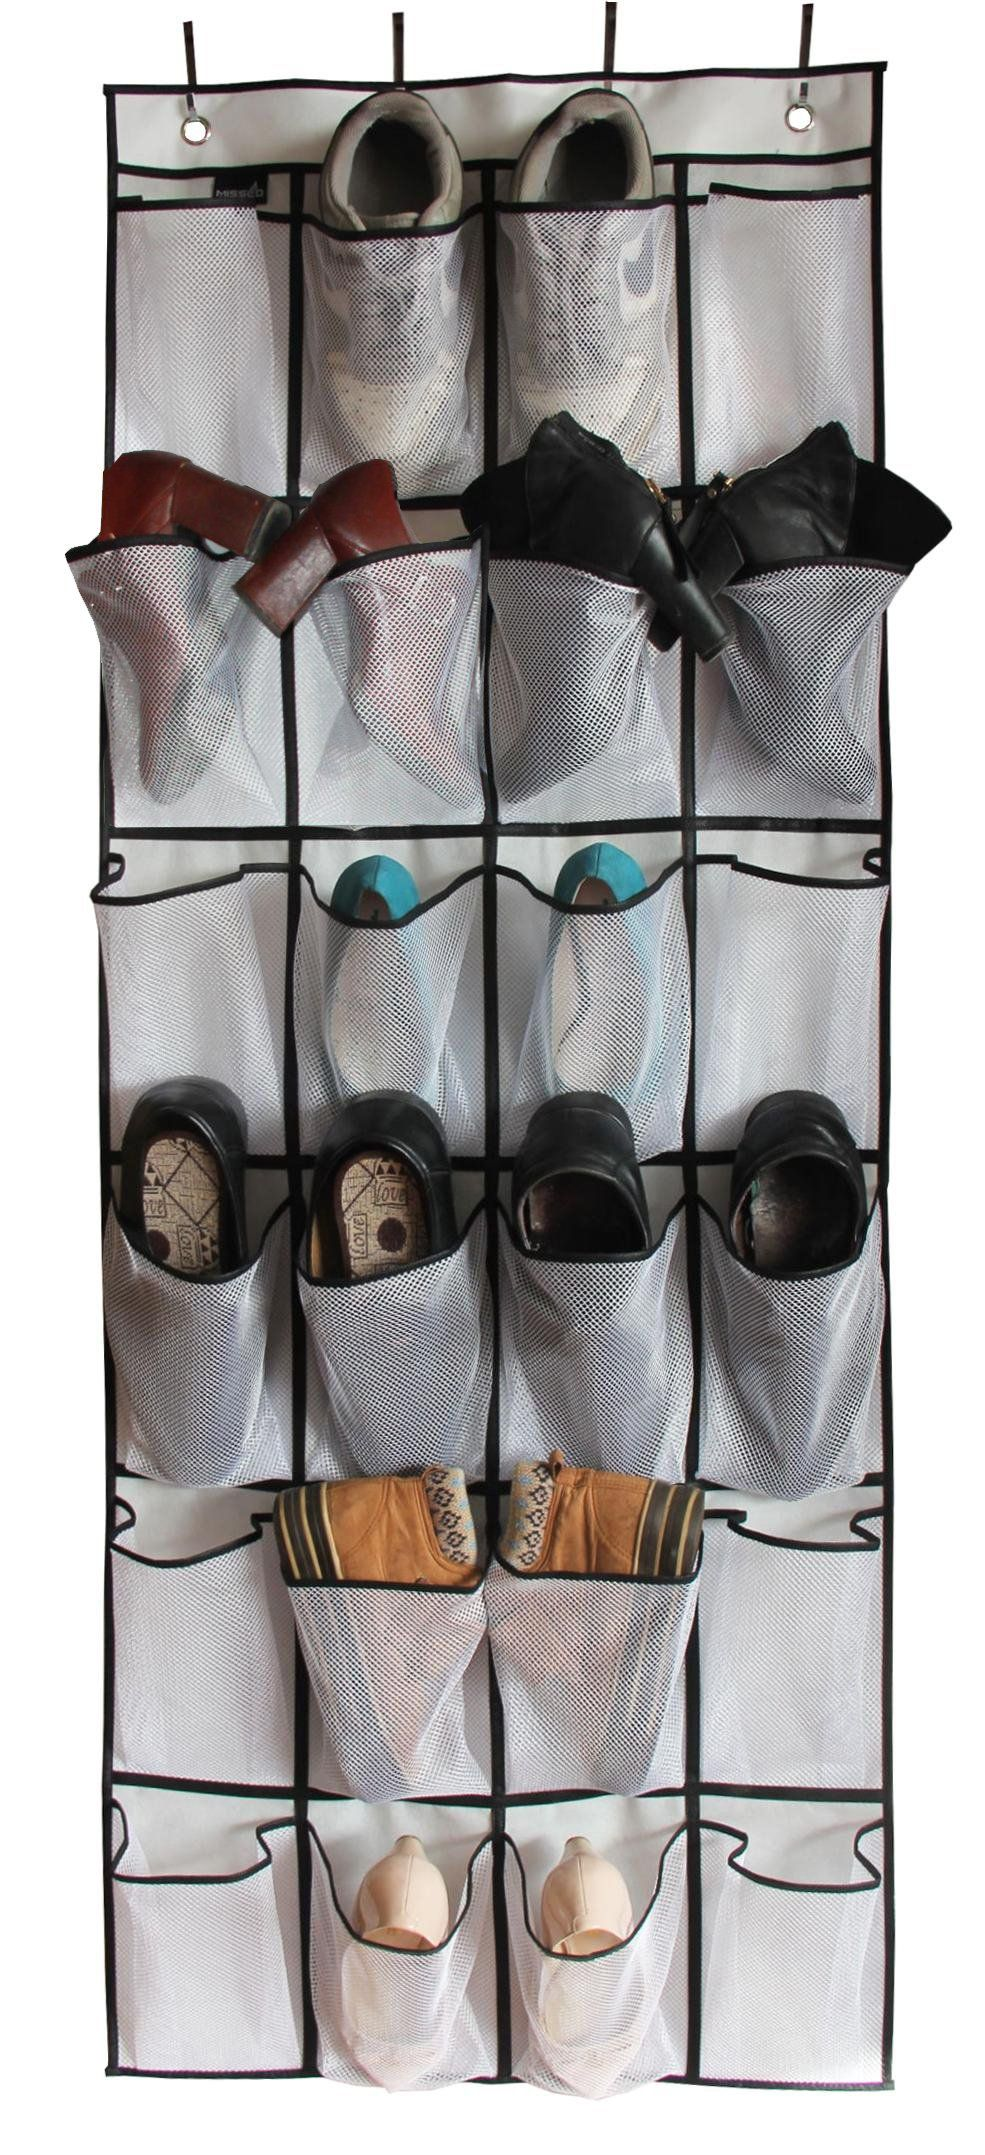 edb55e015d1 MISSLO Over The Door Shoe Organizer 24 Large Mesh Pockets White     Check  out this great product. (This is an affiliate link)  door